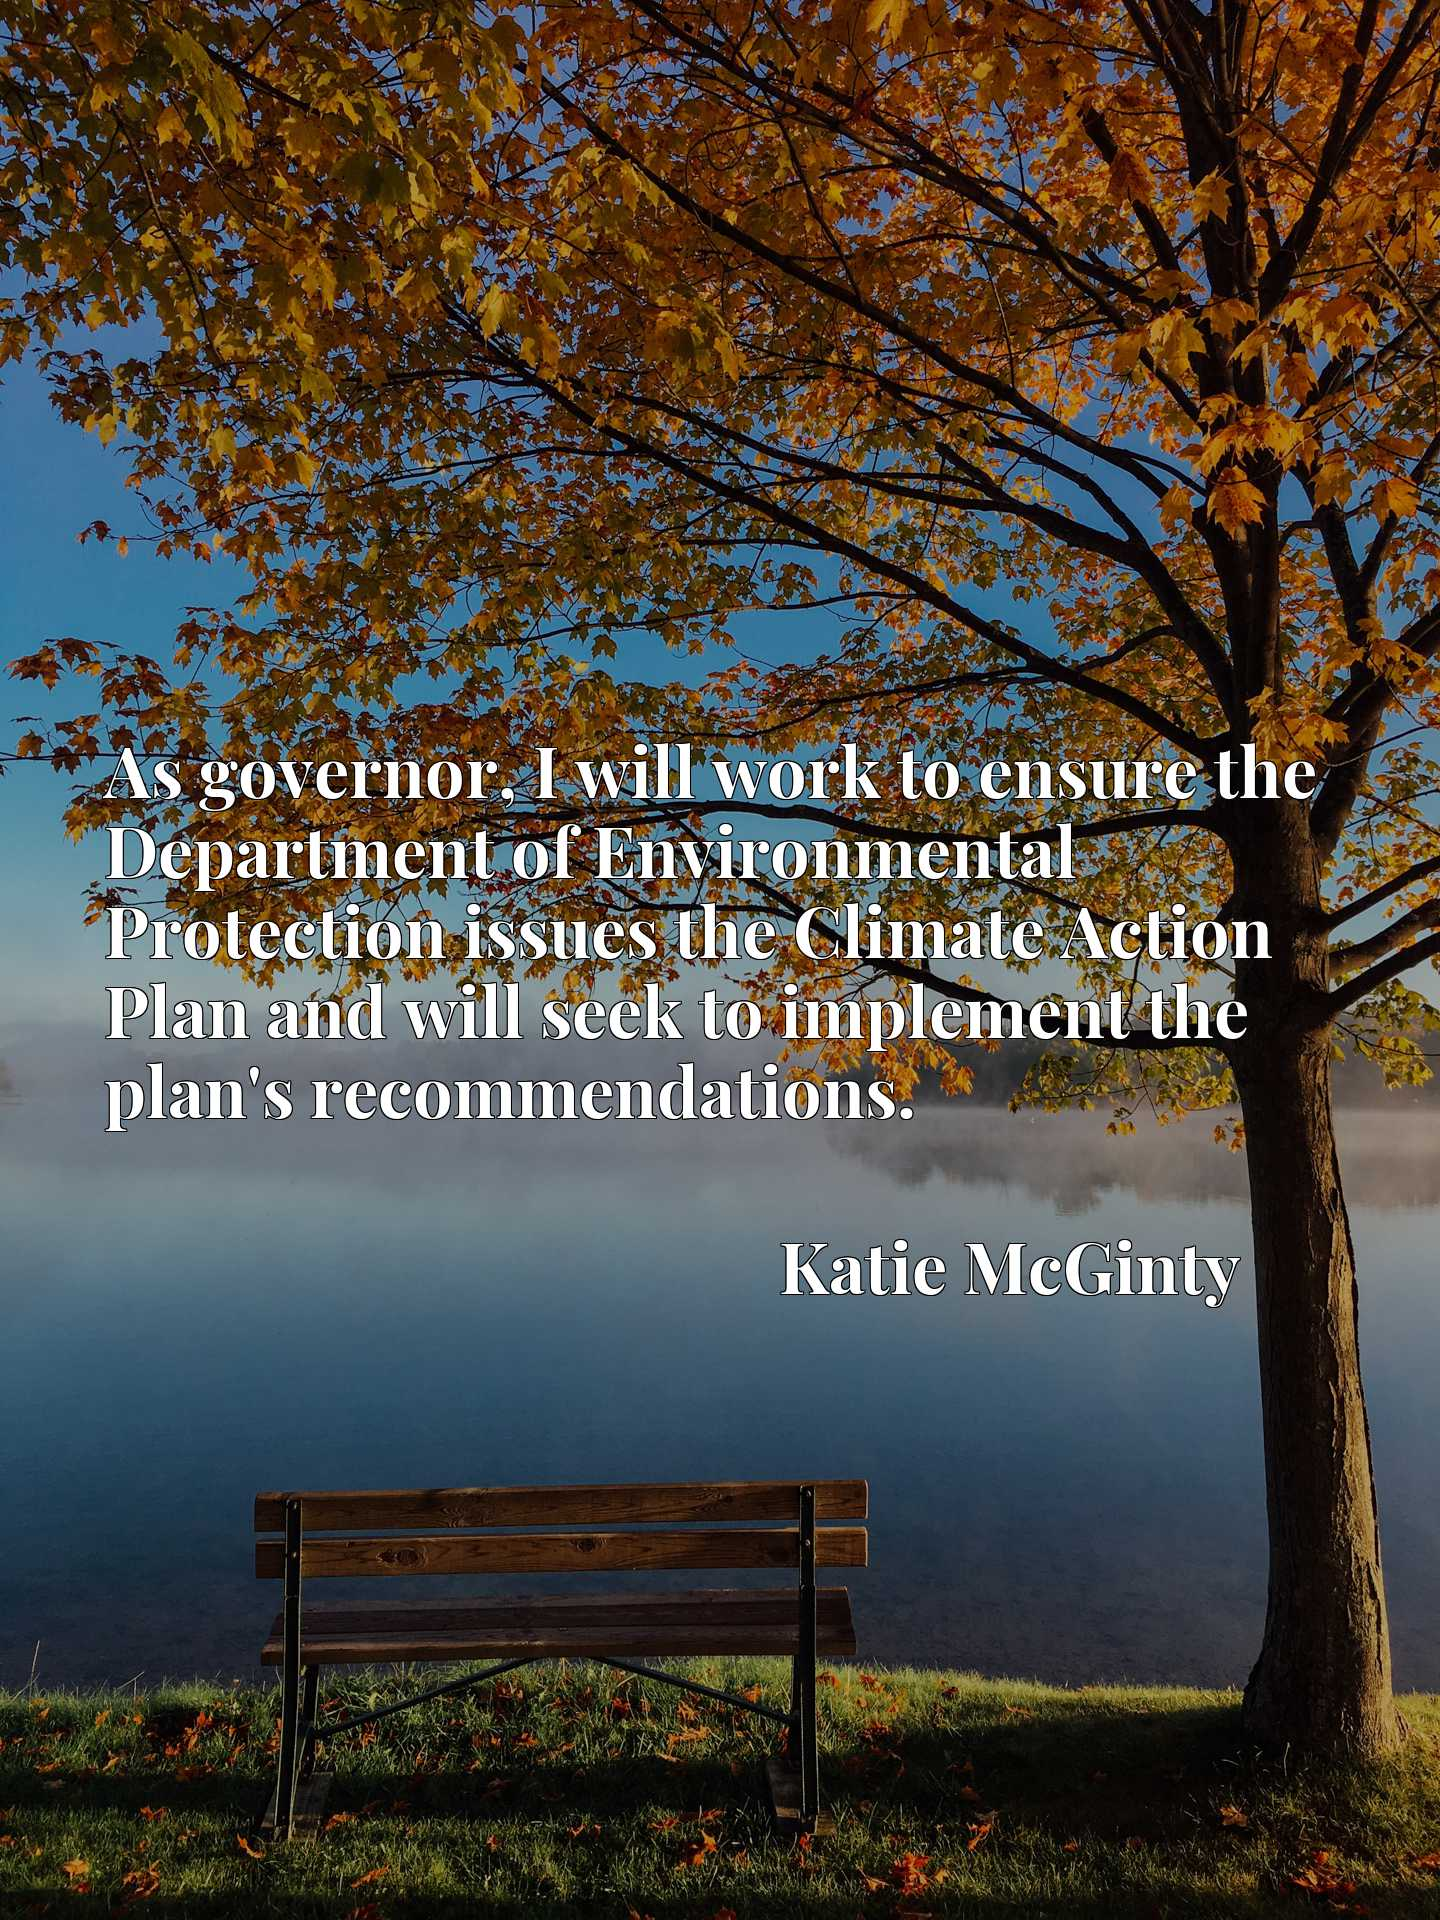 As governor, I will work to ensure the Department of Environmental Protection issues the Climate Action Plan and will seek to implement the plan's recommendations.